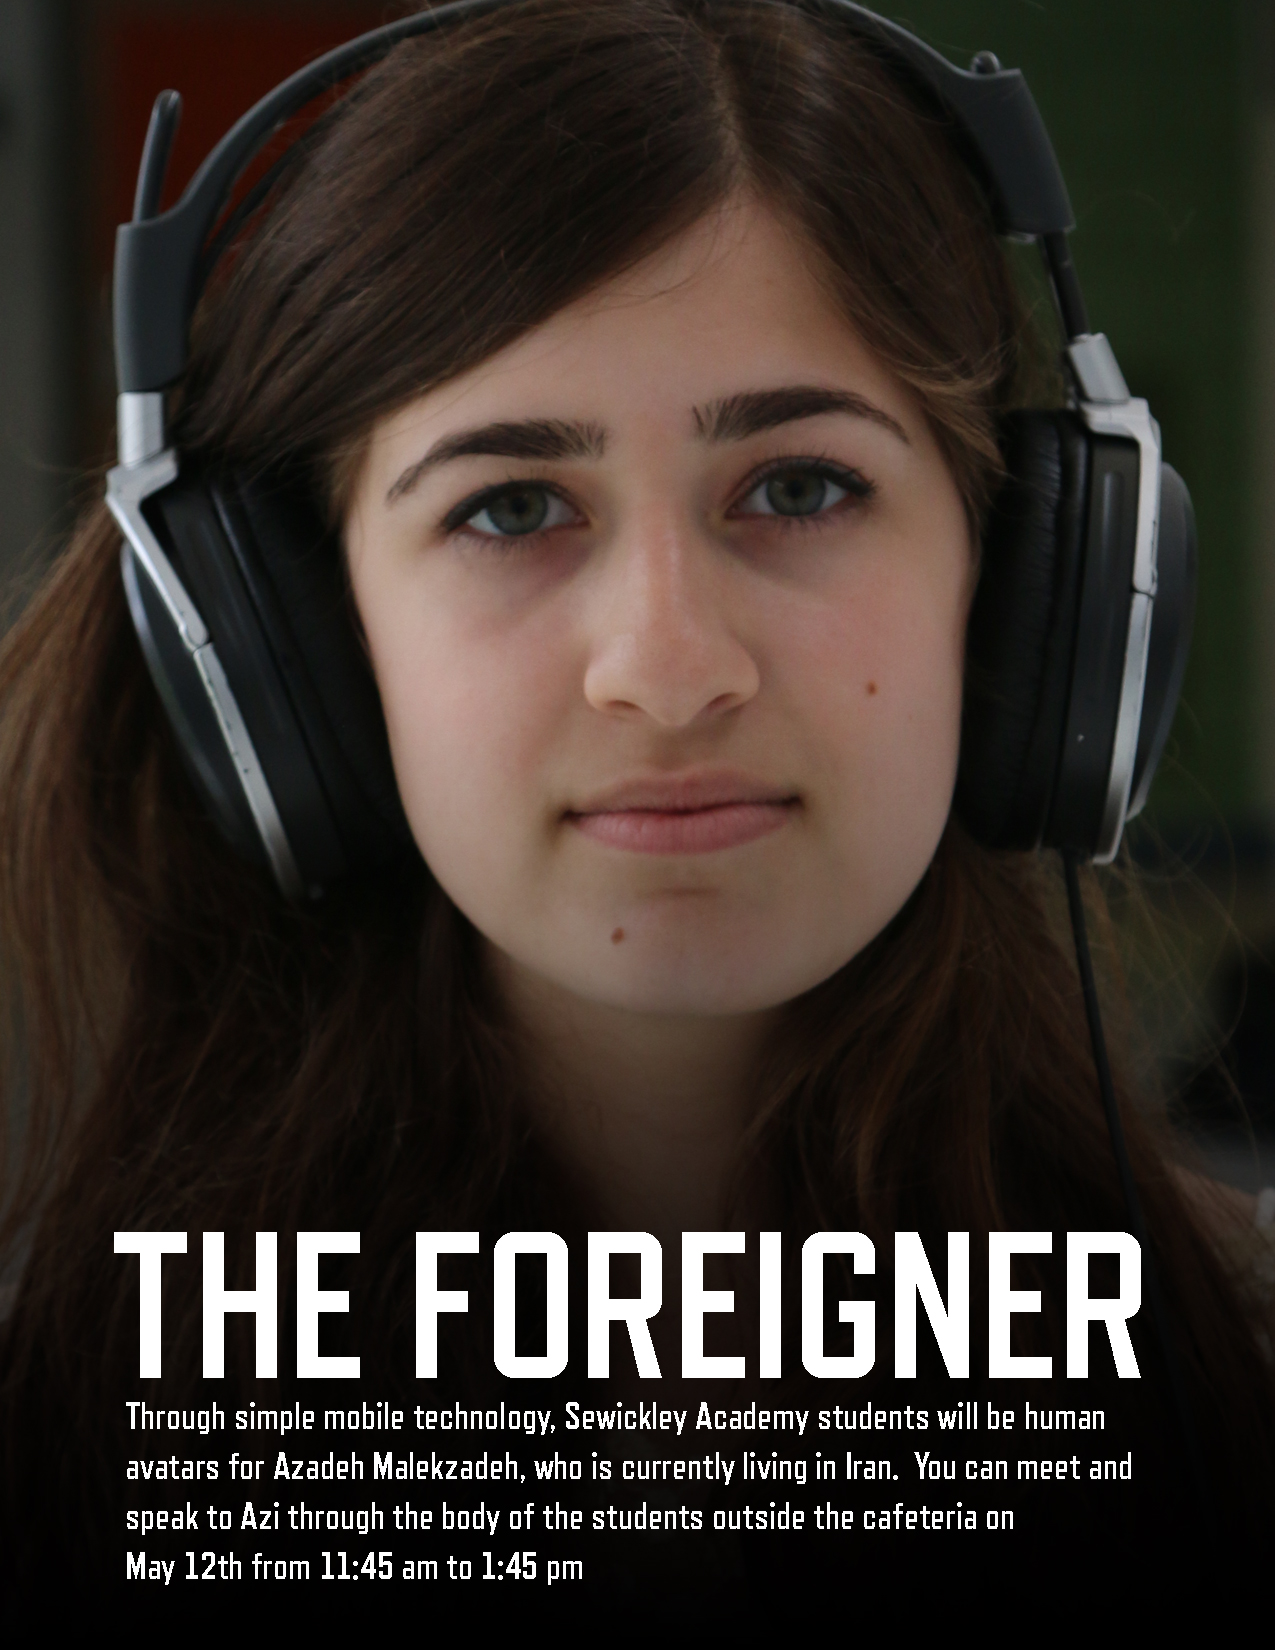 Foreigner-Poster-Sewickley_girl1_Azi